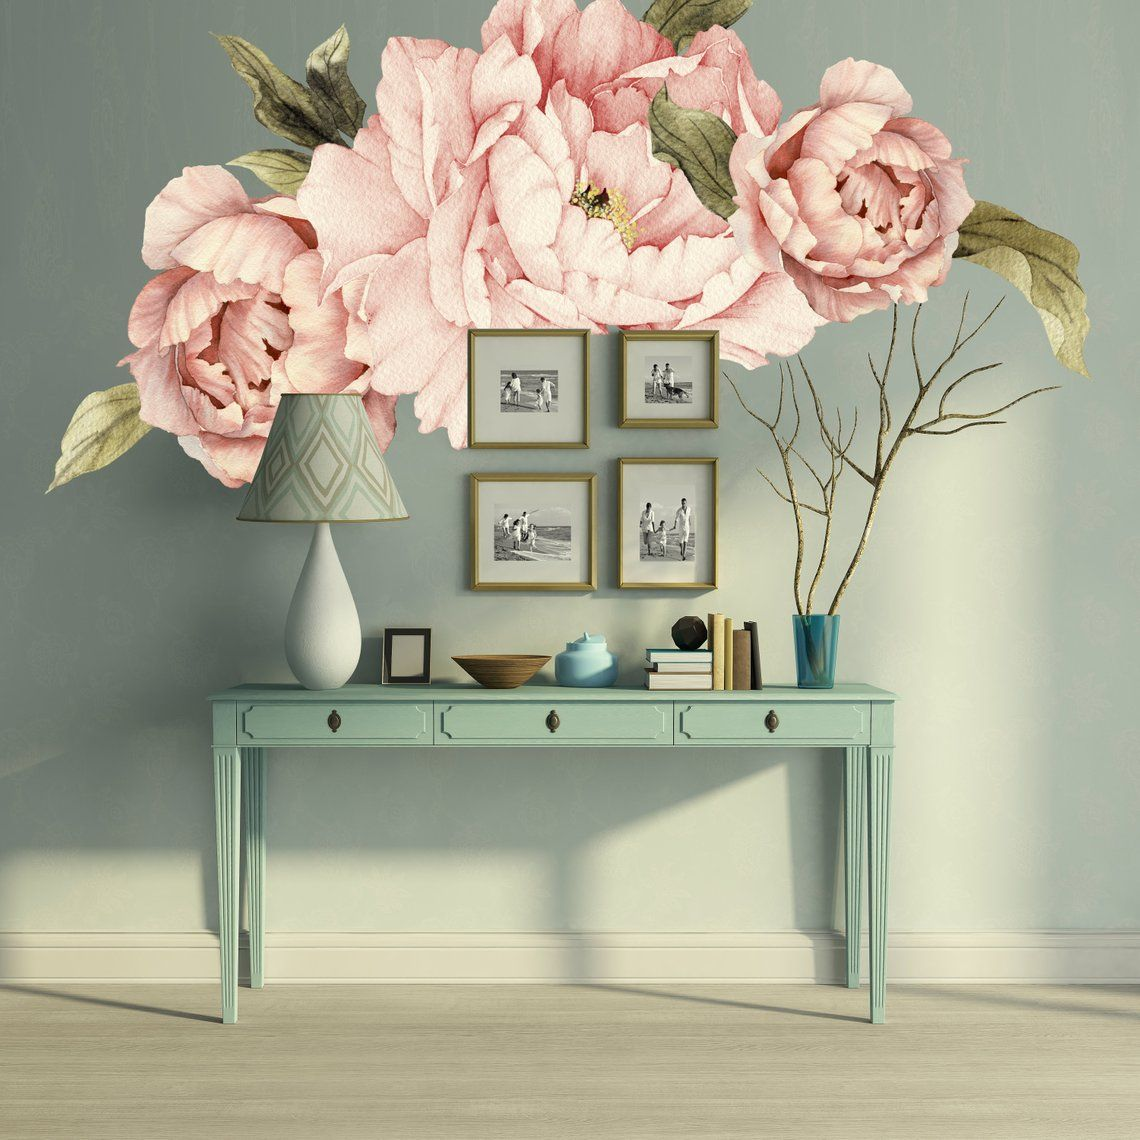 Pink Peony Wall Decal Floral Wall Decals Removable Peel Etsy Floral Wall Decals Wall Decals Floral Wall